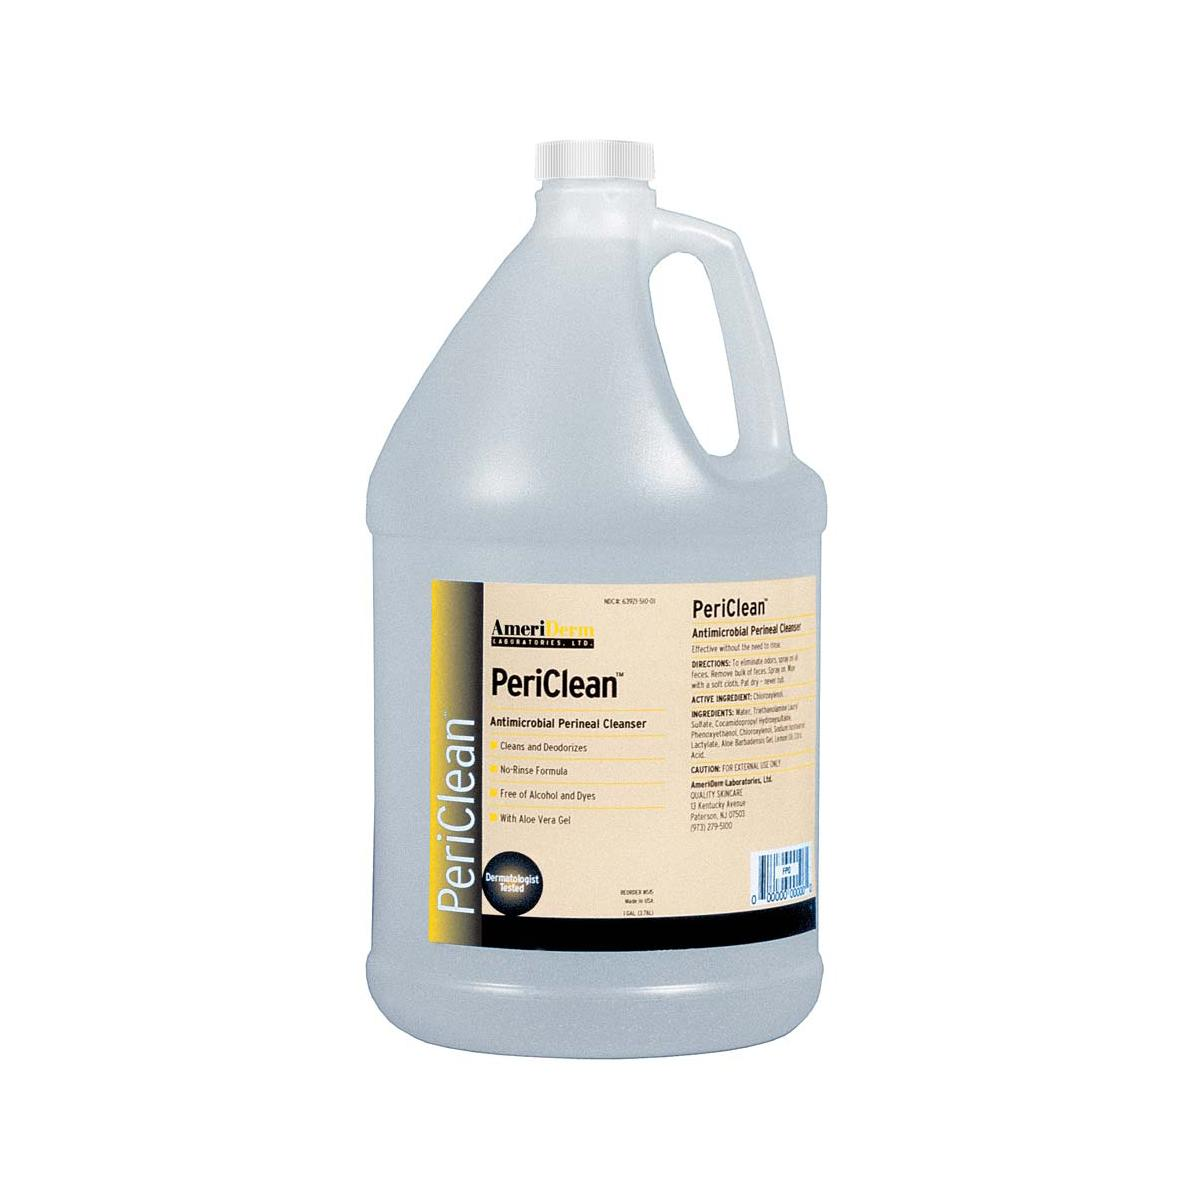 PeriClean Cleanser, 1 Gallon ADM515